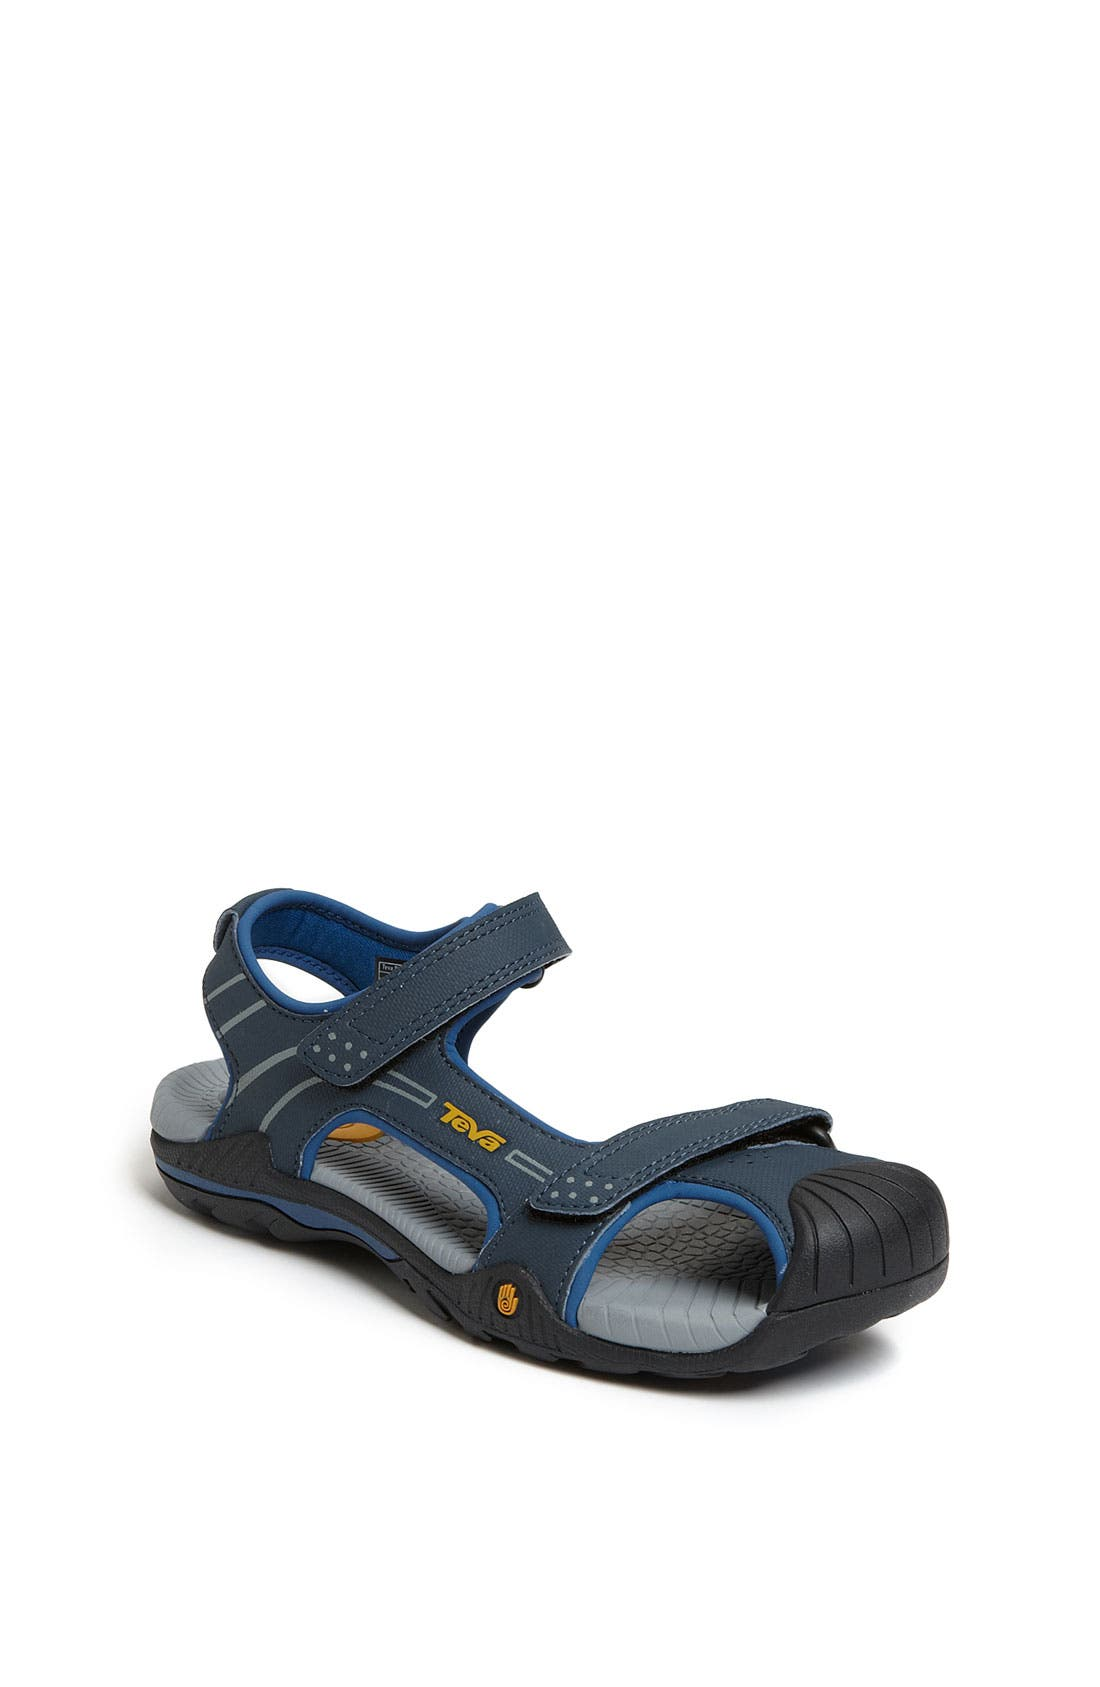 Alternate Image 1 Selected - Teva 'Toachi 2' Sandal (Toddler, Little Kid & Big Kid)